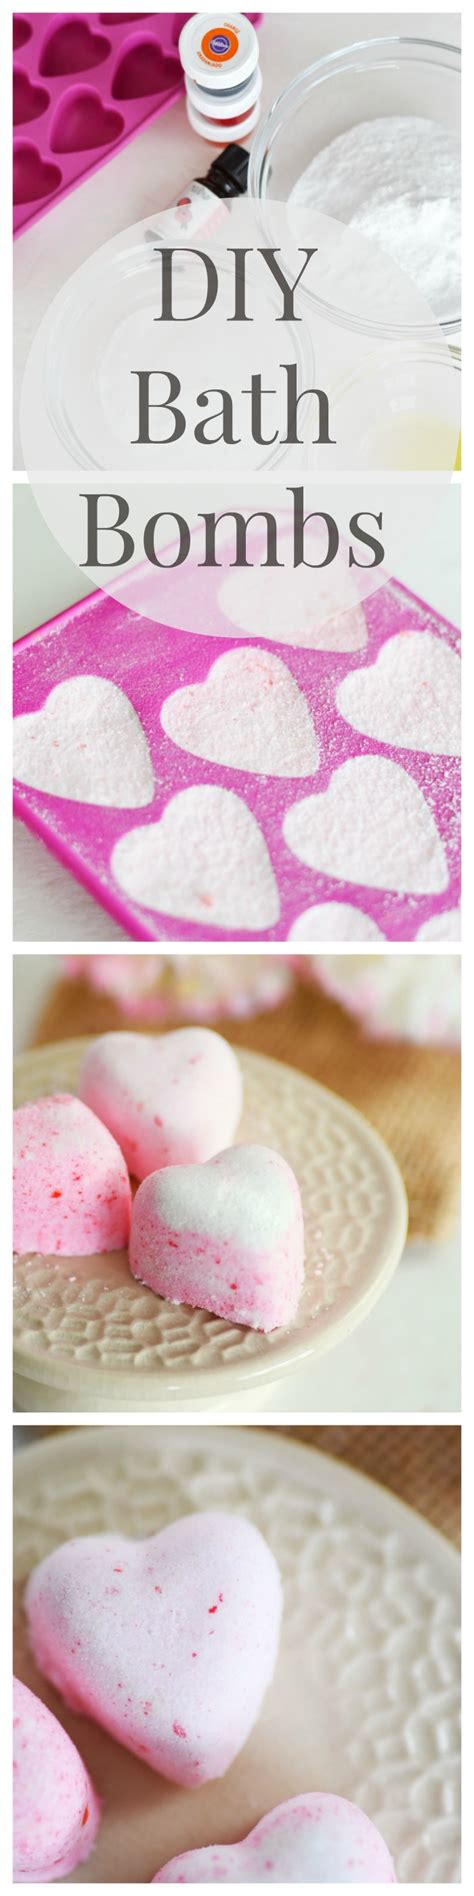 savvy housekeeping 187 child diy gift idea a fun and frugal how to make bath bomb fizzies savvy saving couple